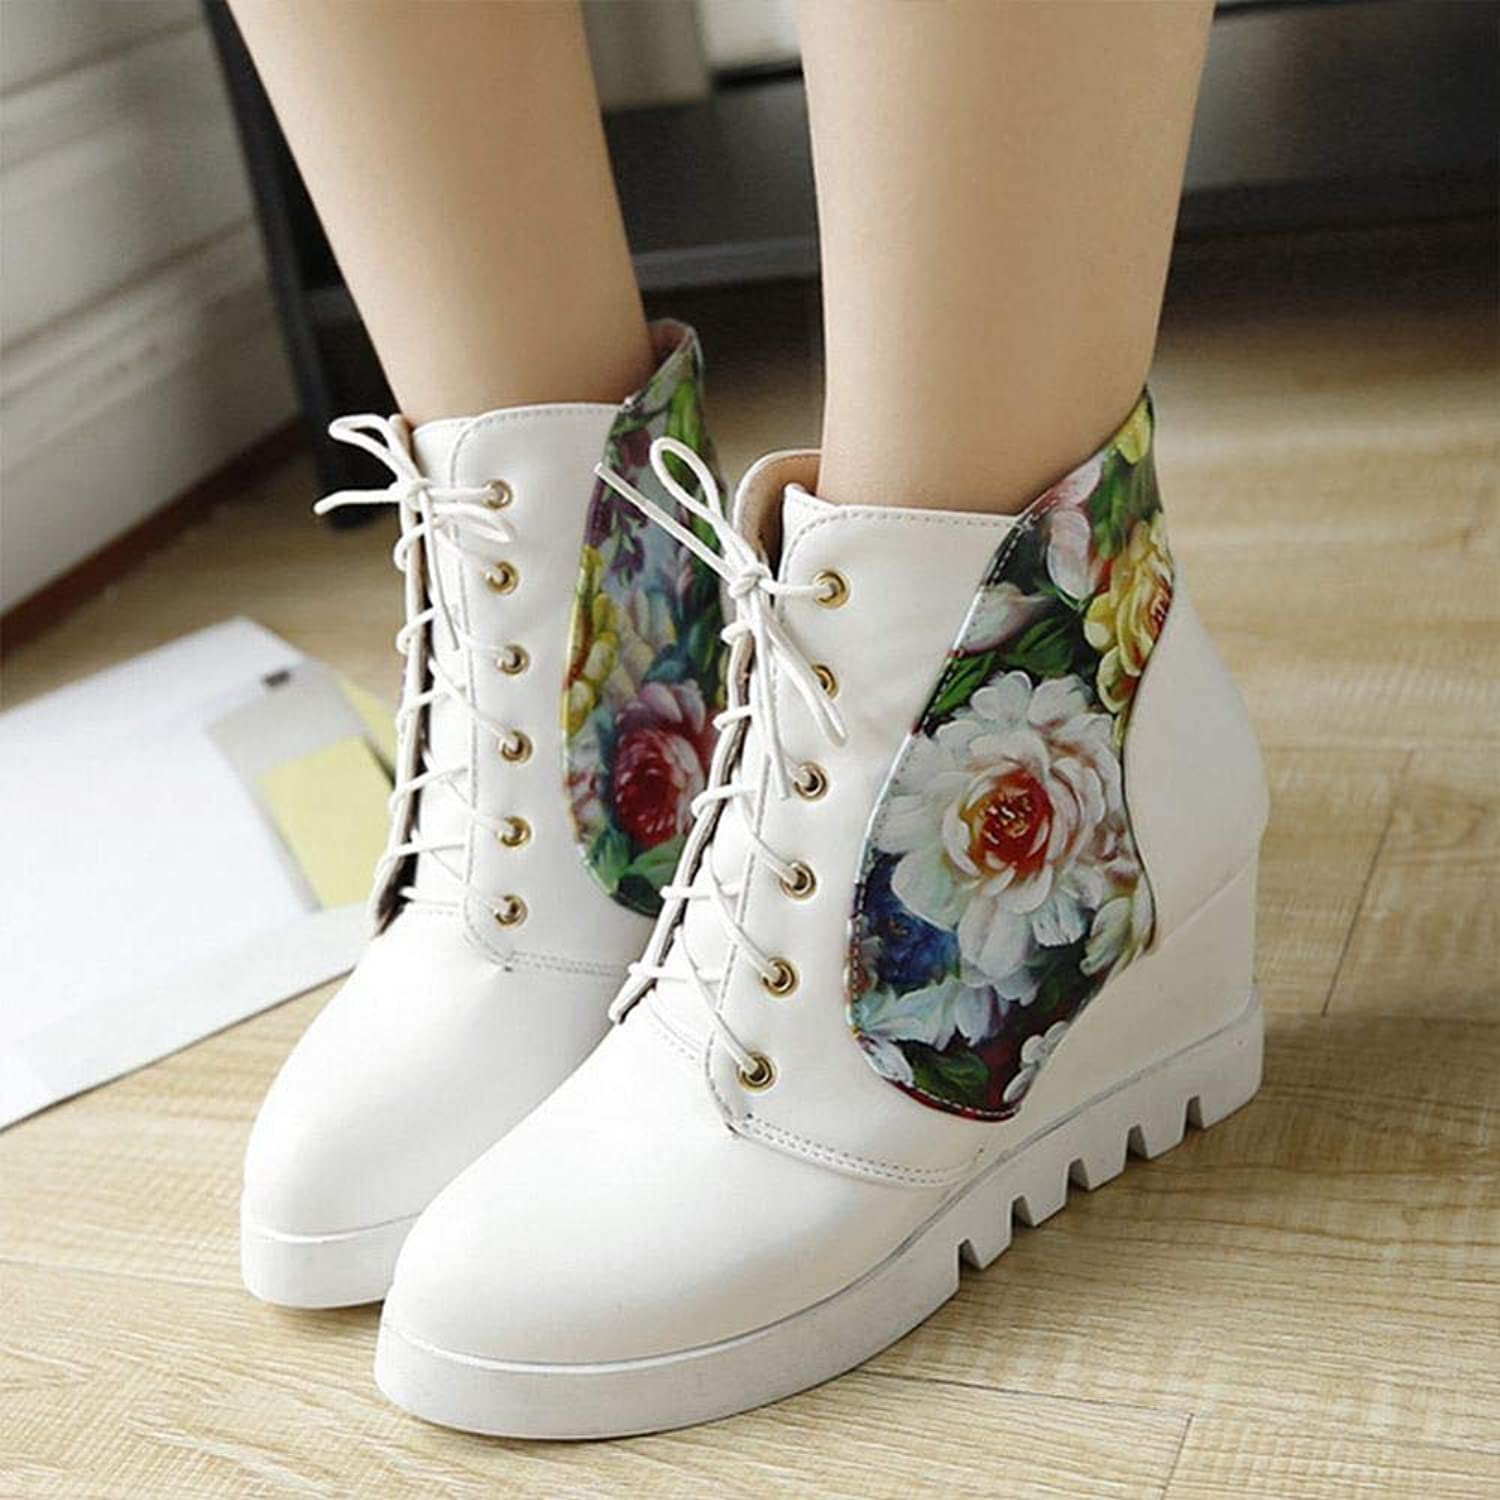 Women's shoes - Tie up Inside The High High shoes Casual Flat Boots Sweet Student shoes 35-43